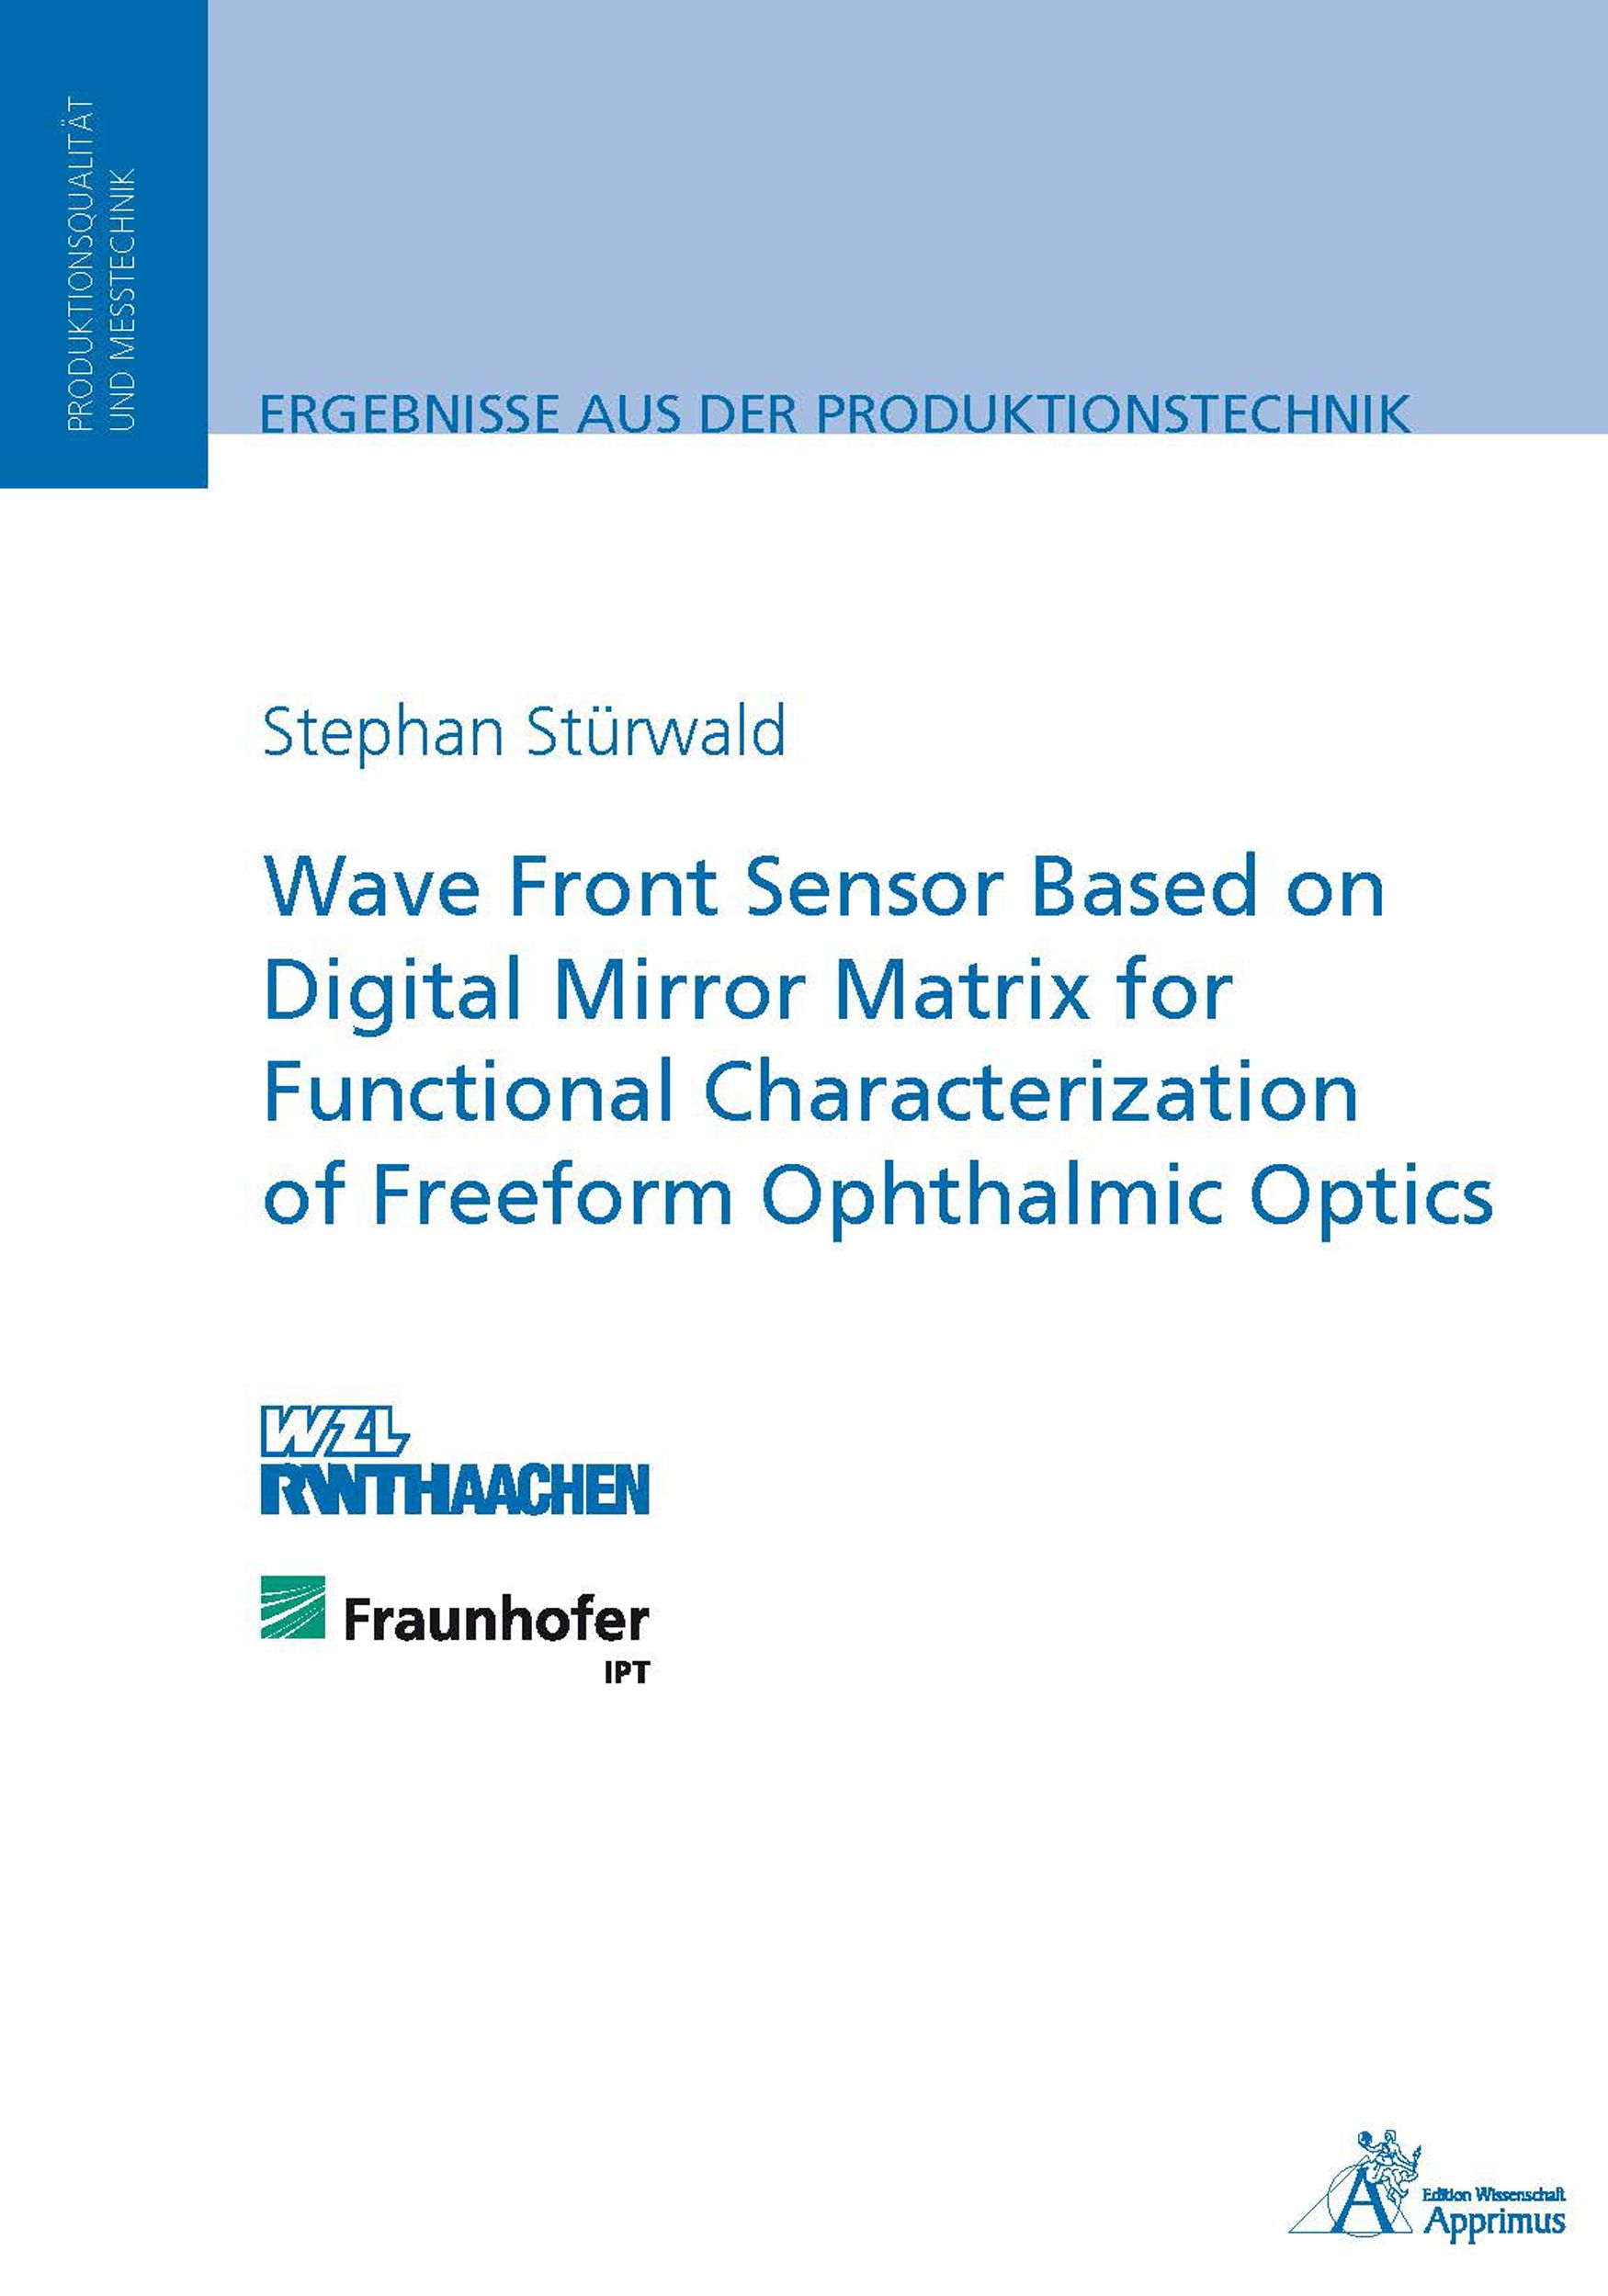 Wave Front Sensor Based on Digital Mirror Matrix for Functional Characterization of Freeform Ophthalmic Optics (E-Book)